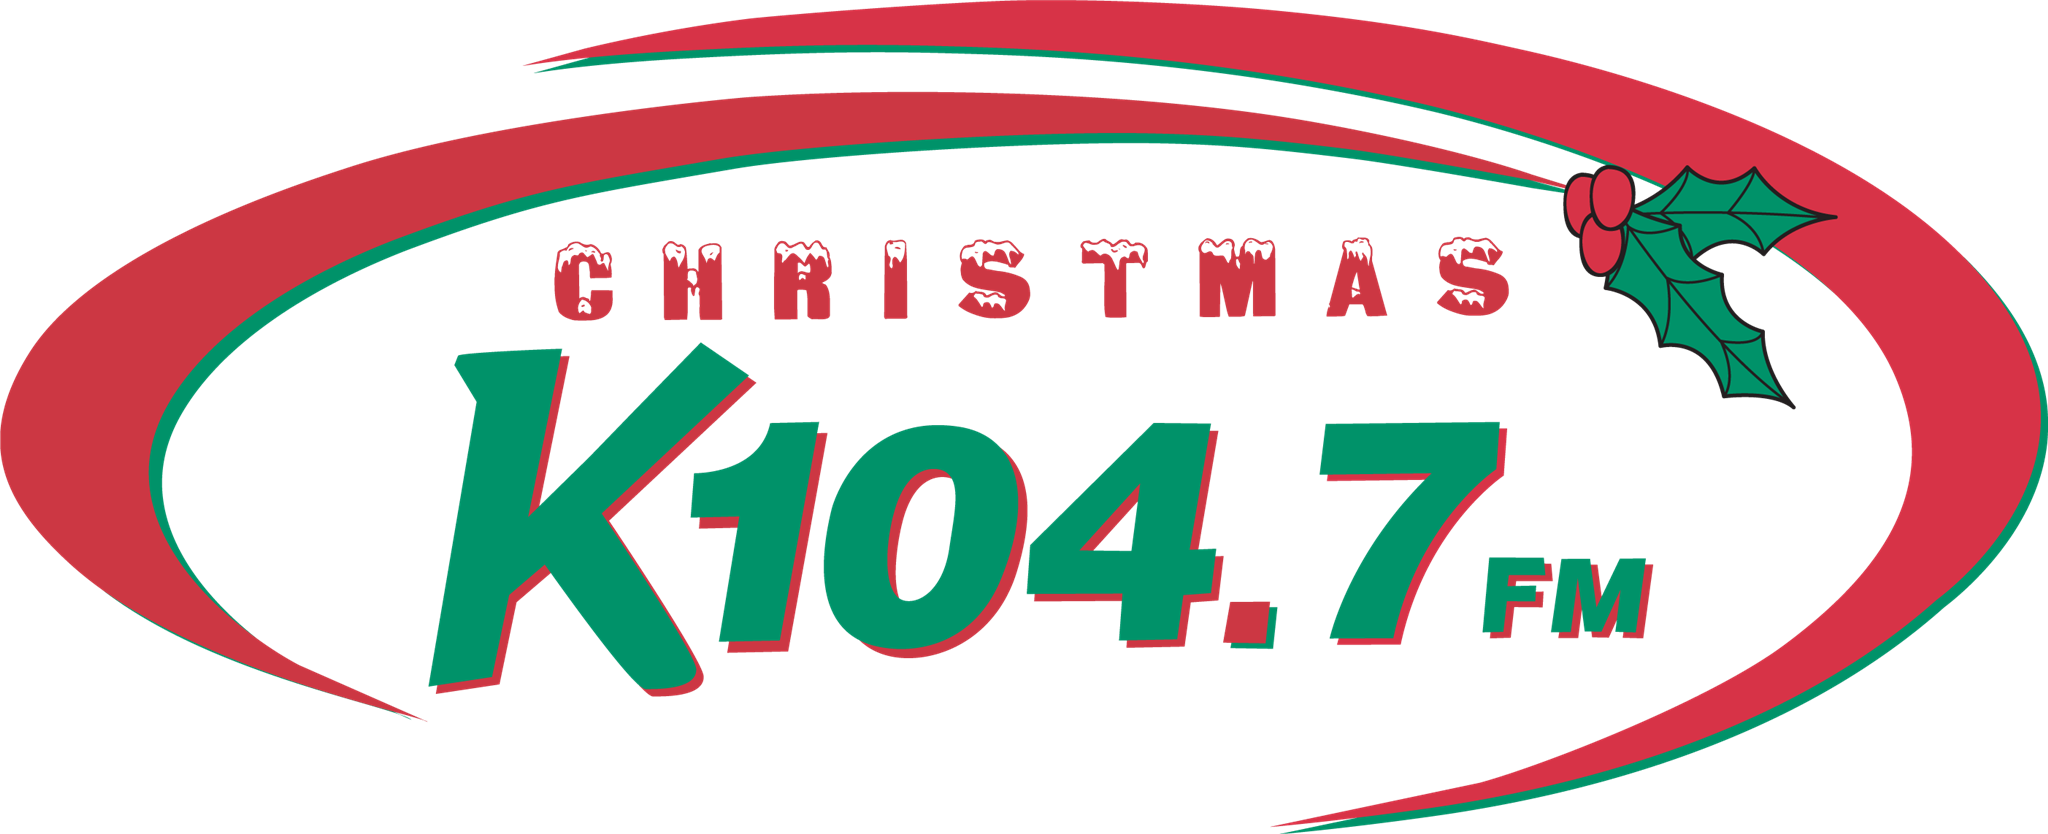 K 104.7 - More Music, Better Variety